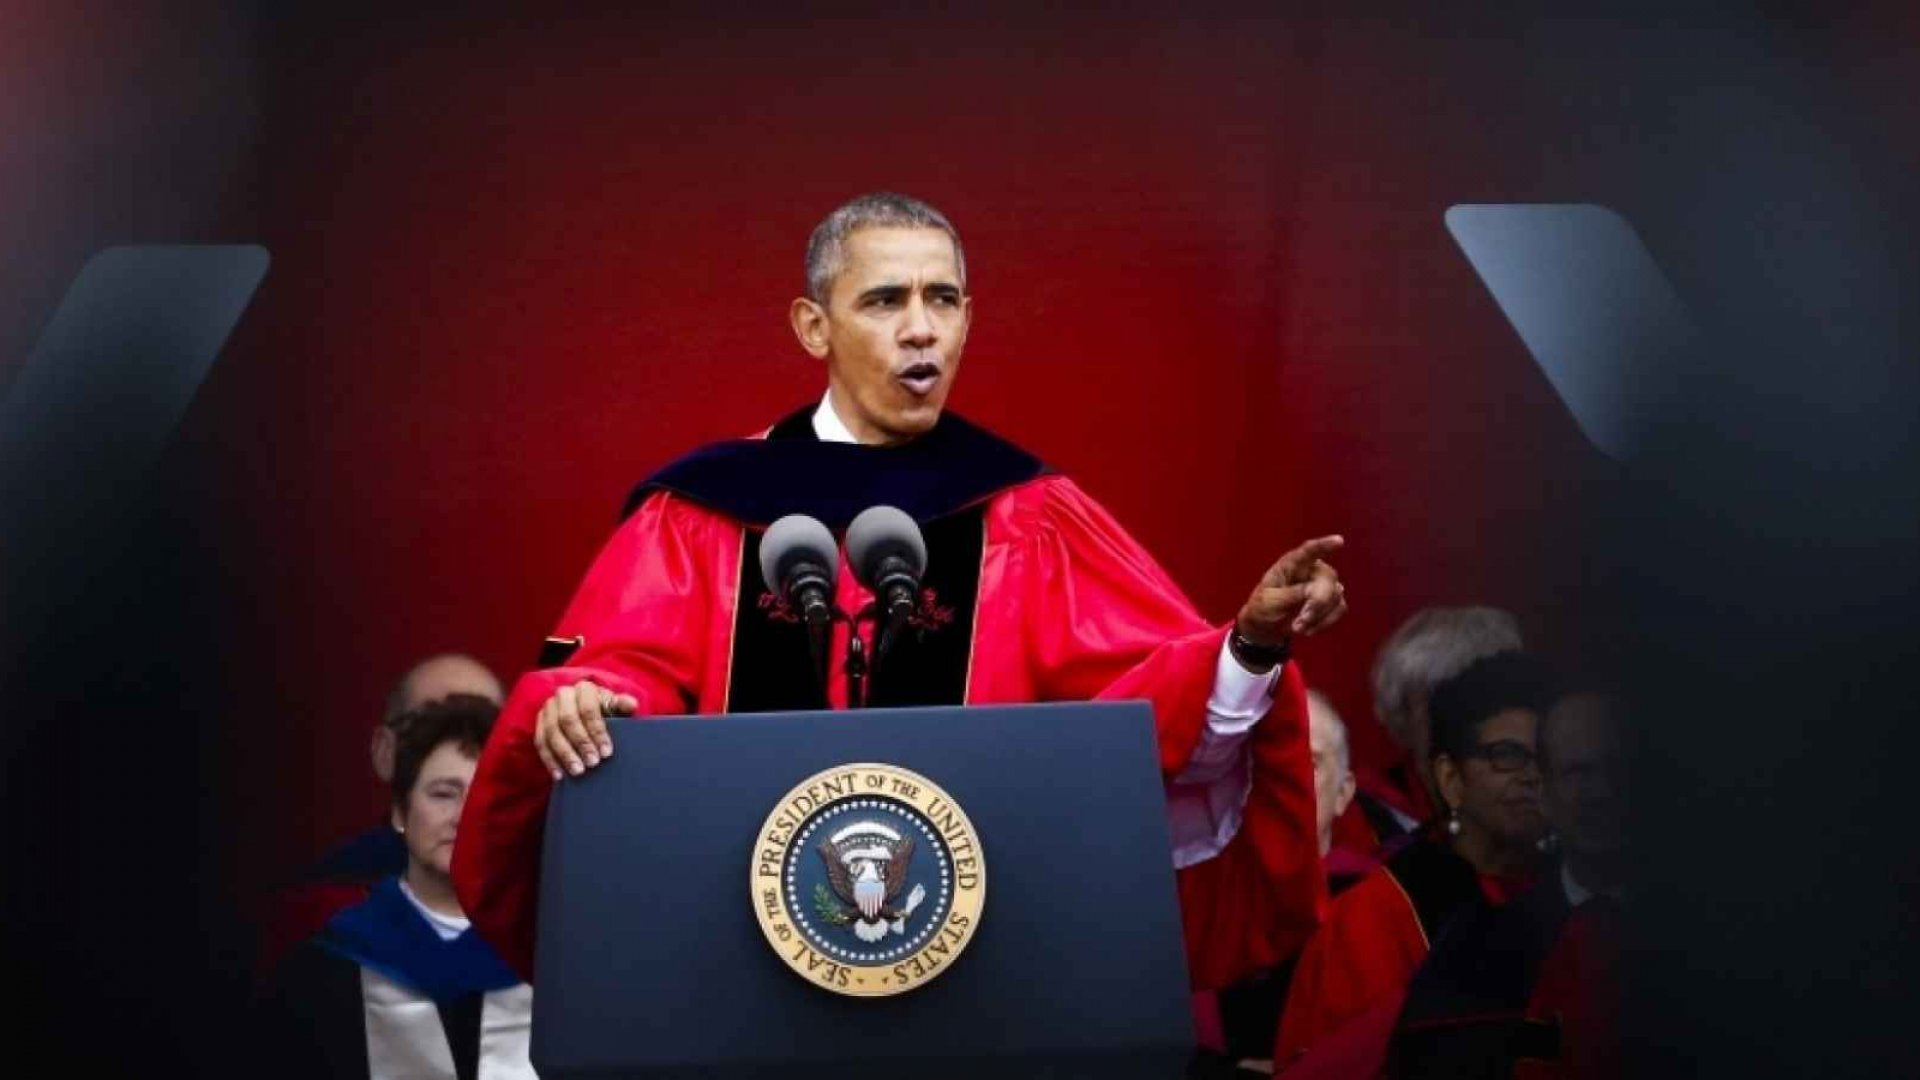 The 5 Best Bits of Wisdom From This Year's Commencement Speeches